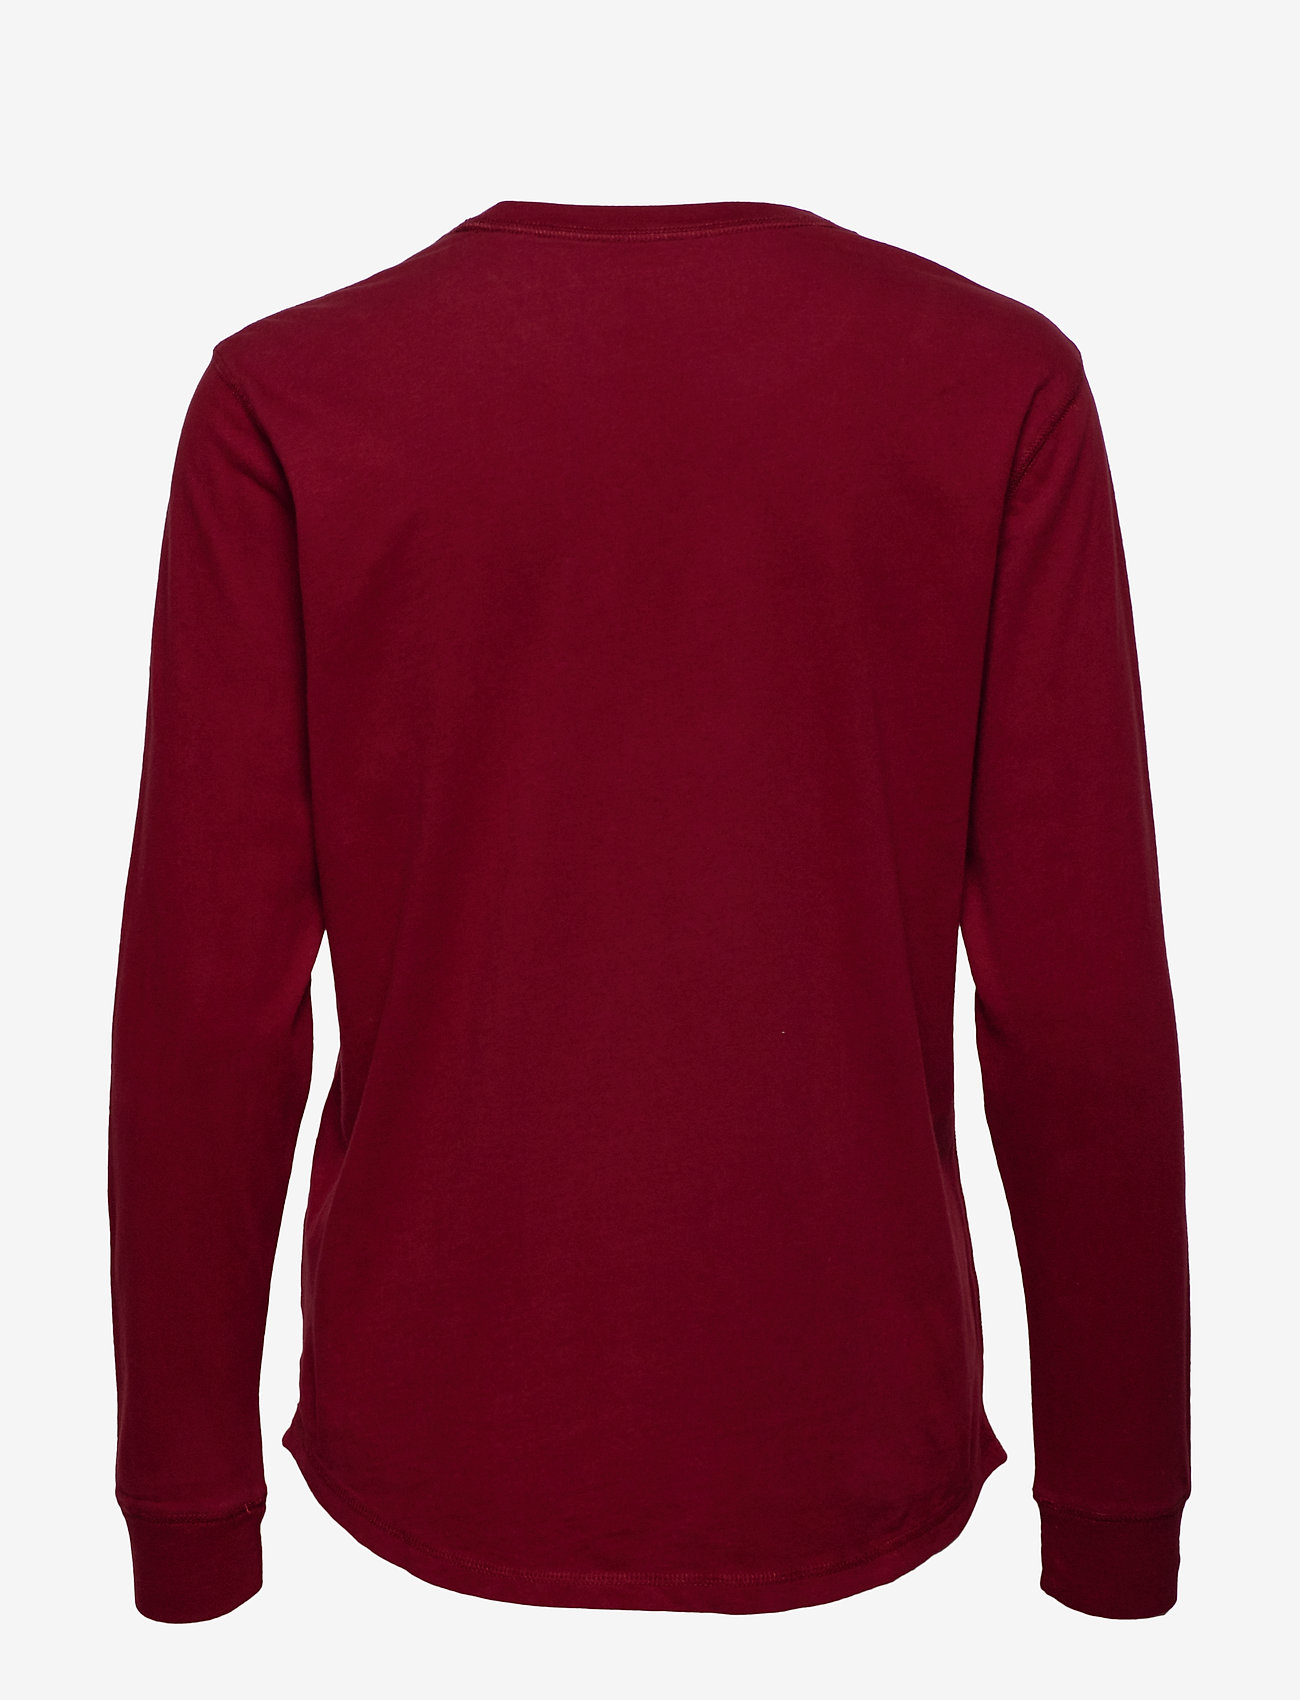 Long Sleeve Logo Tee (Burgundy Dd) (233.40 kr) - Abercrombie & Fitch